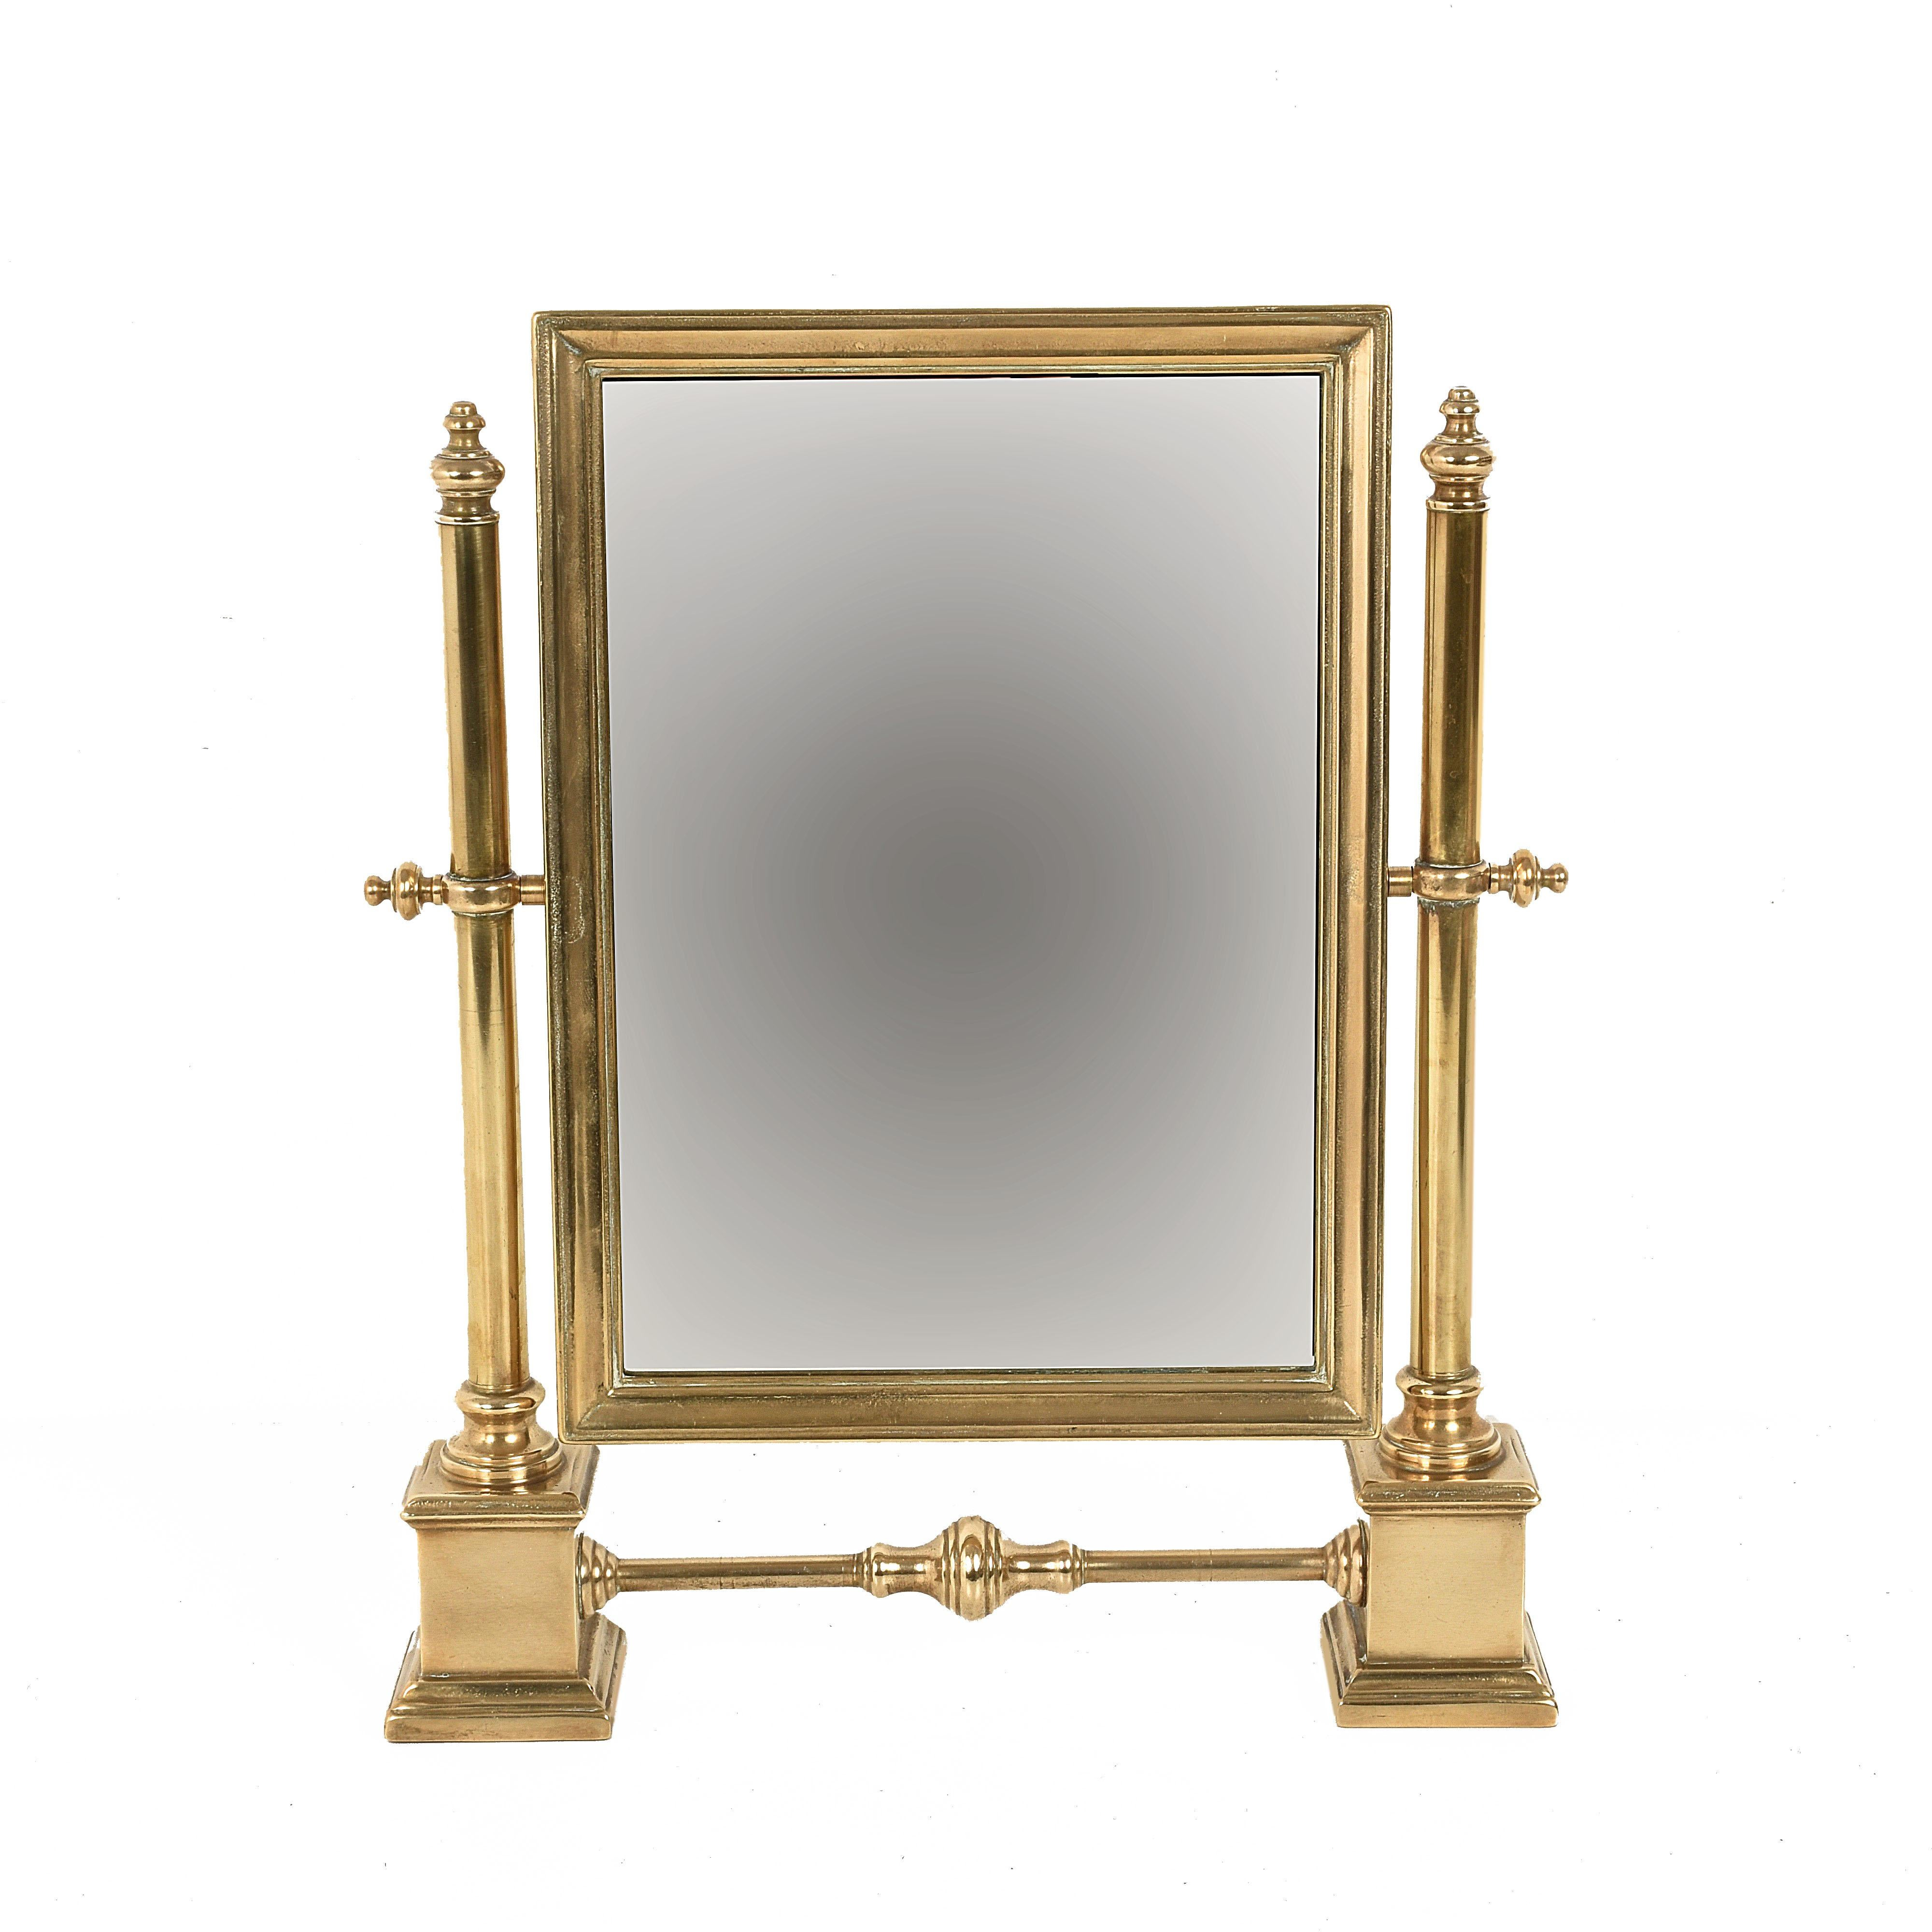 Table Mirror In Polished Brass, Vanity, Adjustable, Italy, 1950s